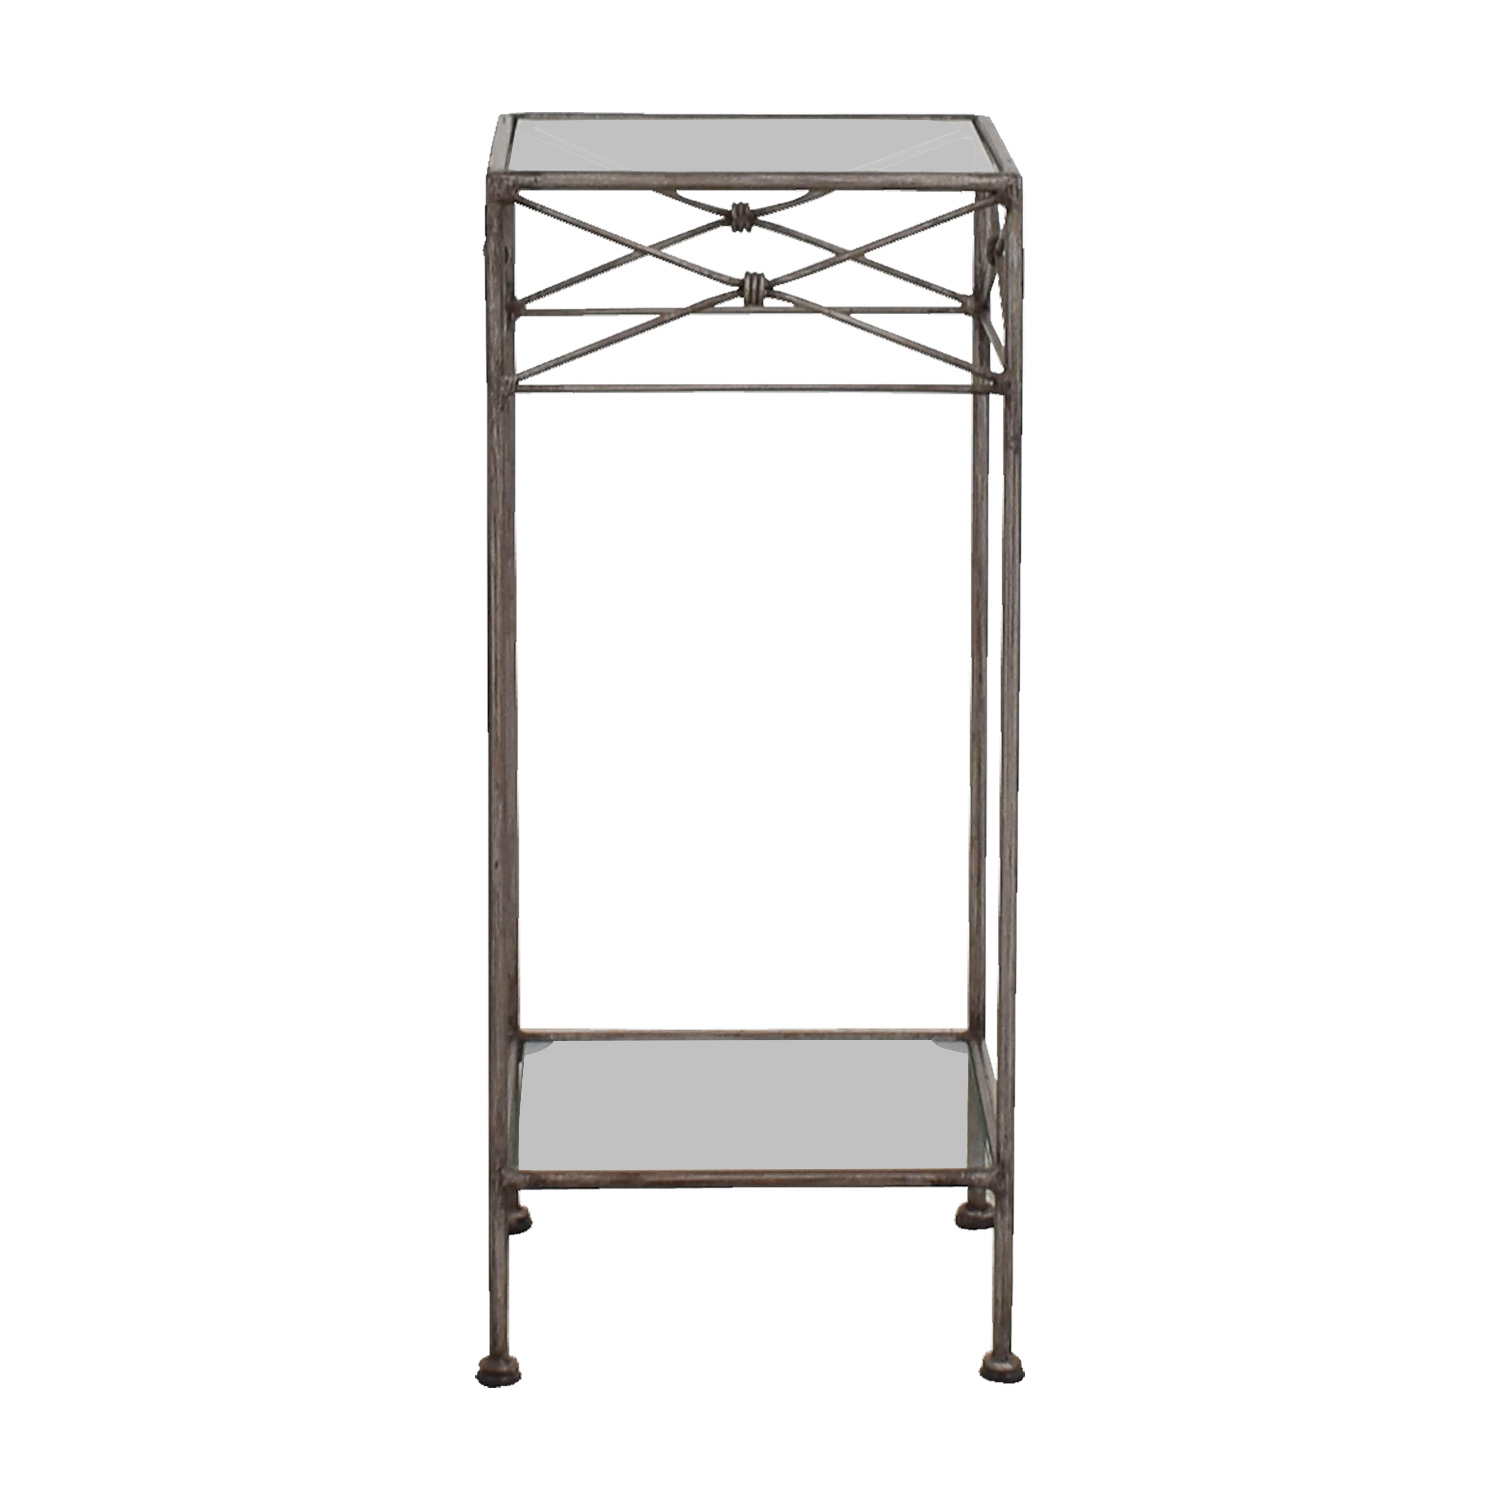 Wrought Iron and Glass Side Table second hand